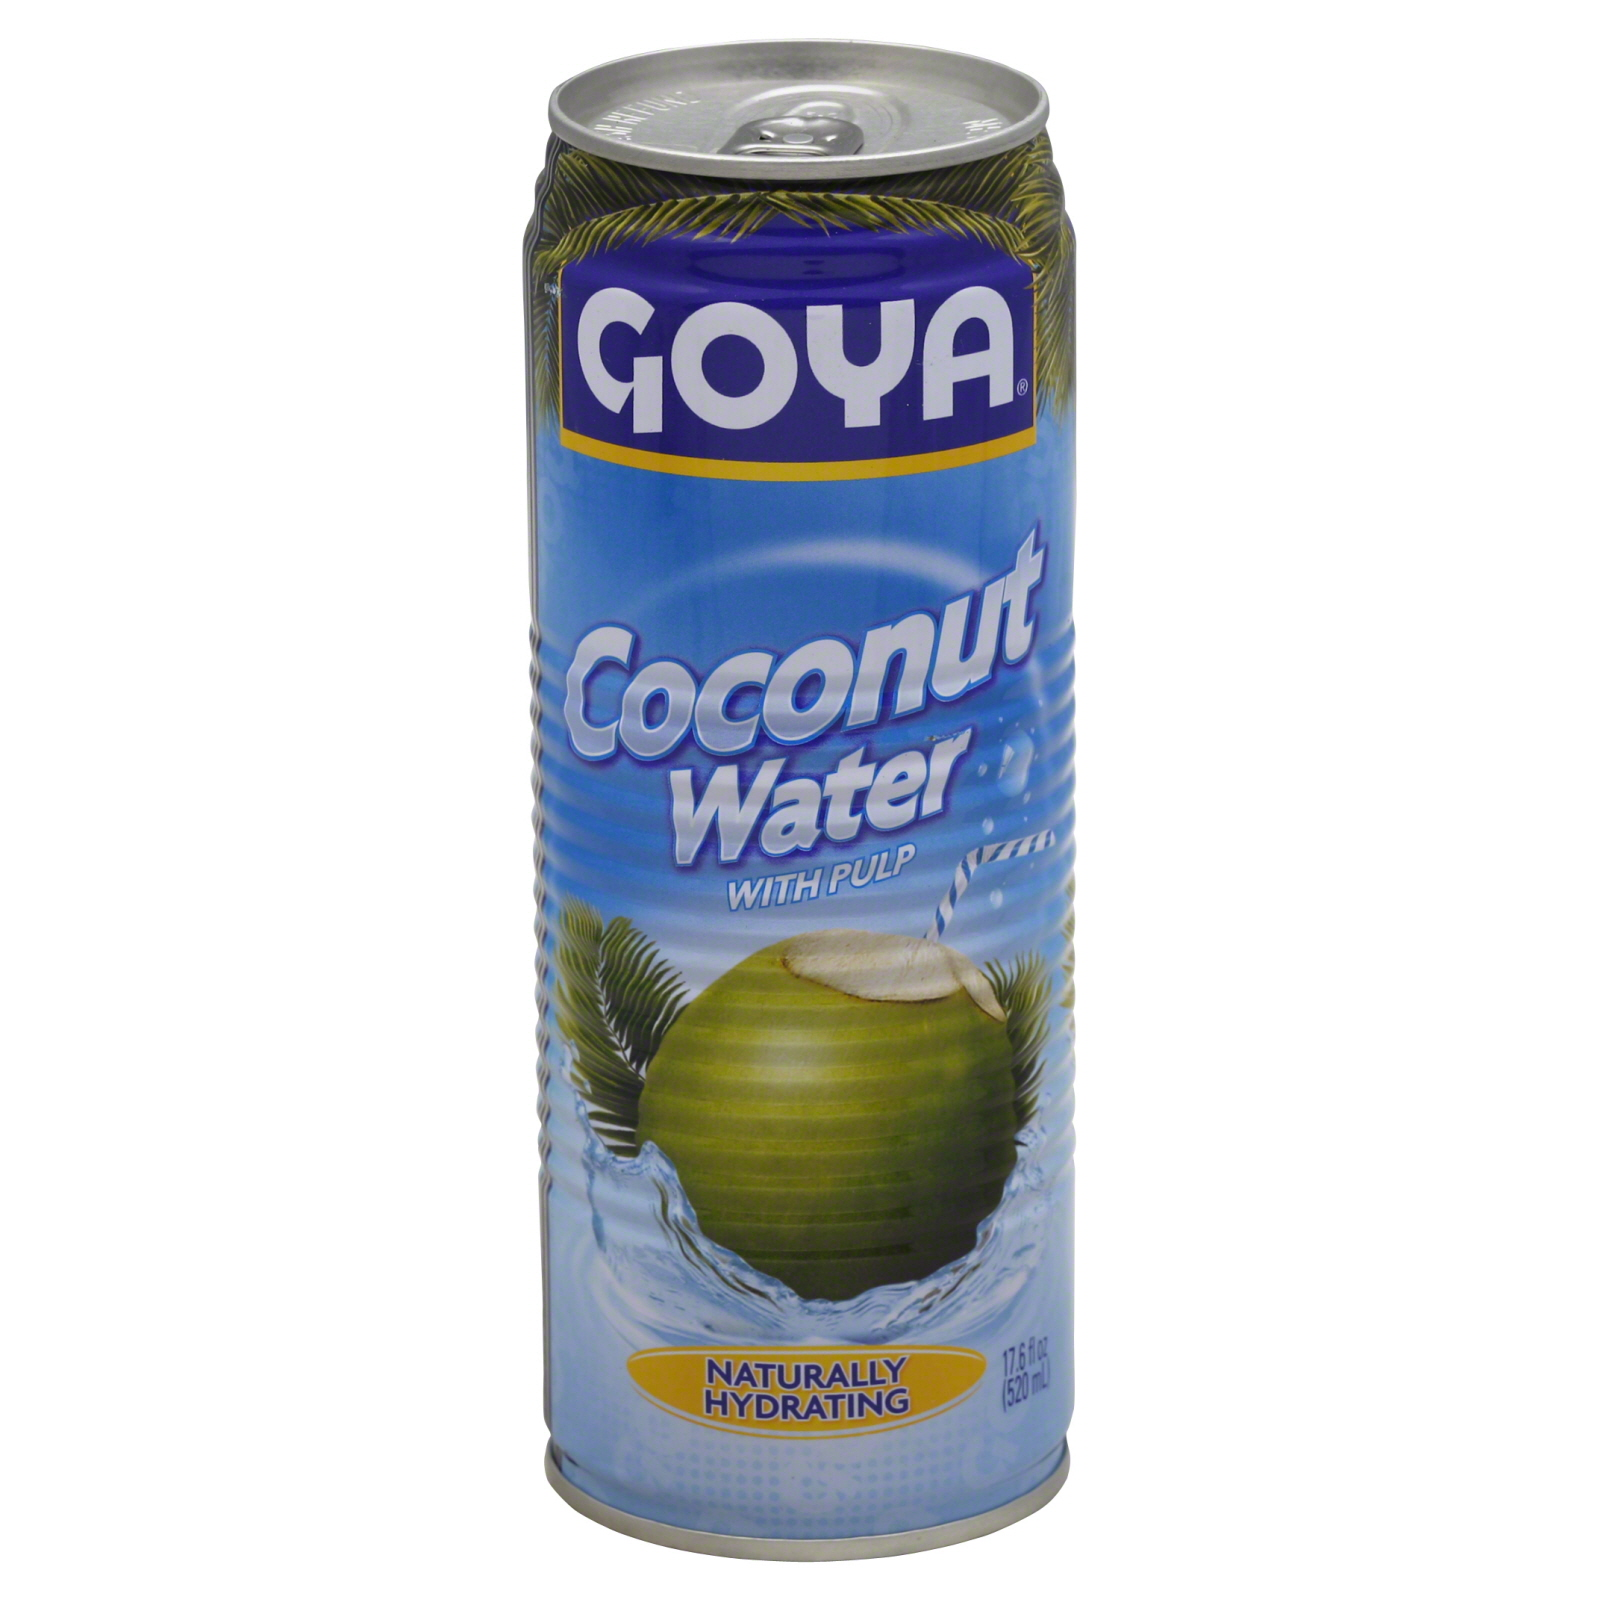 Goya Juice Coconut Water 17.6 Fl Oz 520 Ml - Food